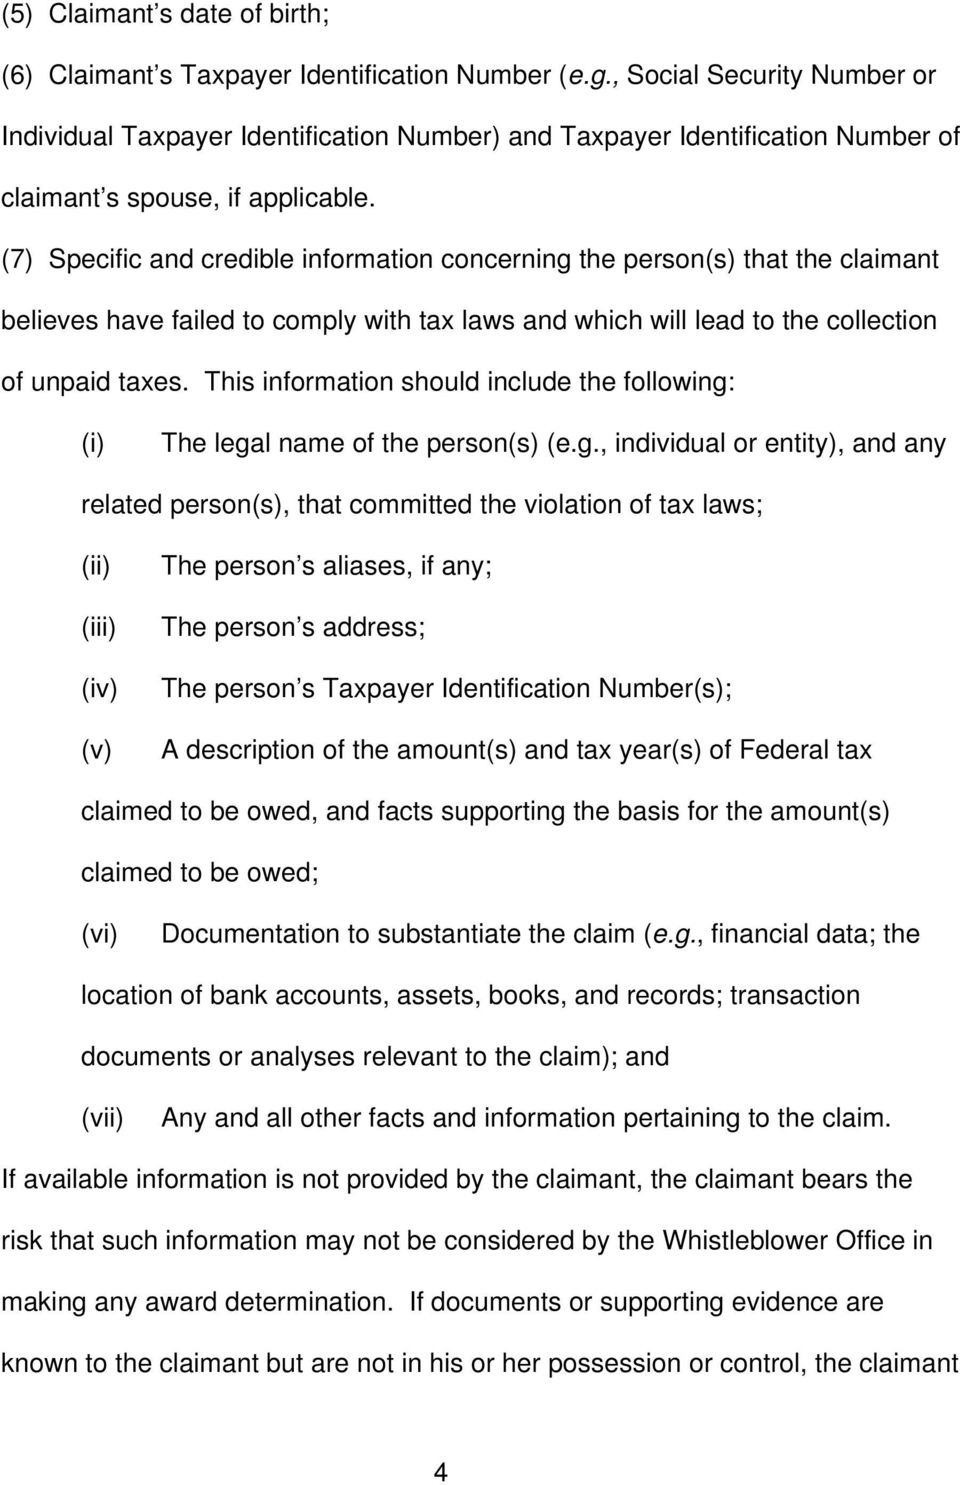 (7) Specific and credible information concerning the person(s) that the claimant believes have failed to comply with tax laws and which will lead to the collection of unpaid taxes.